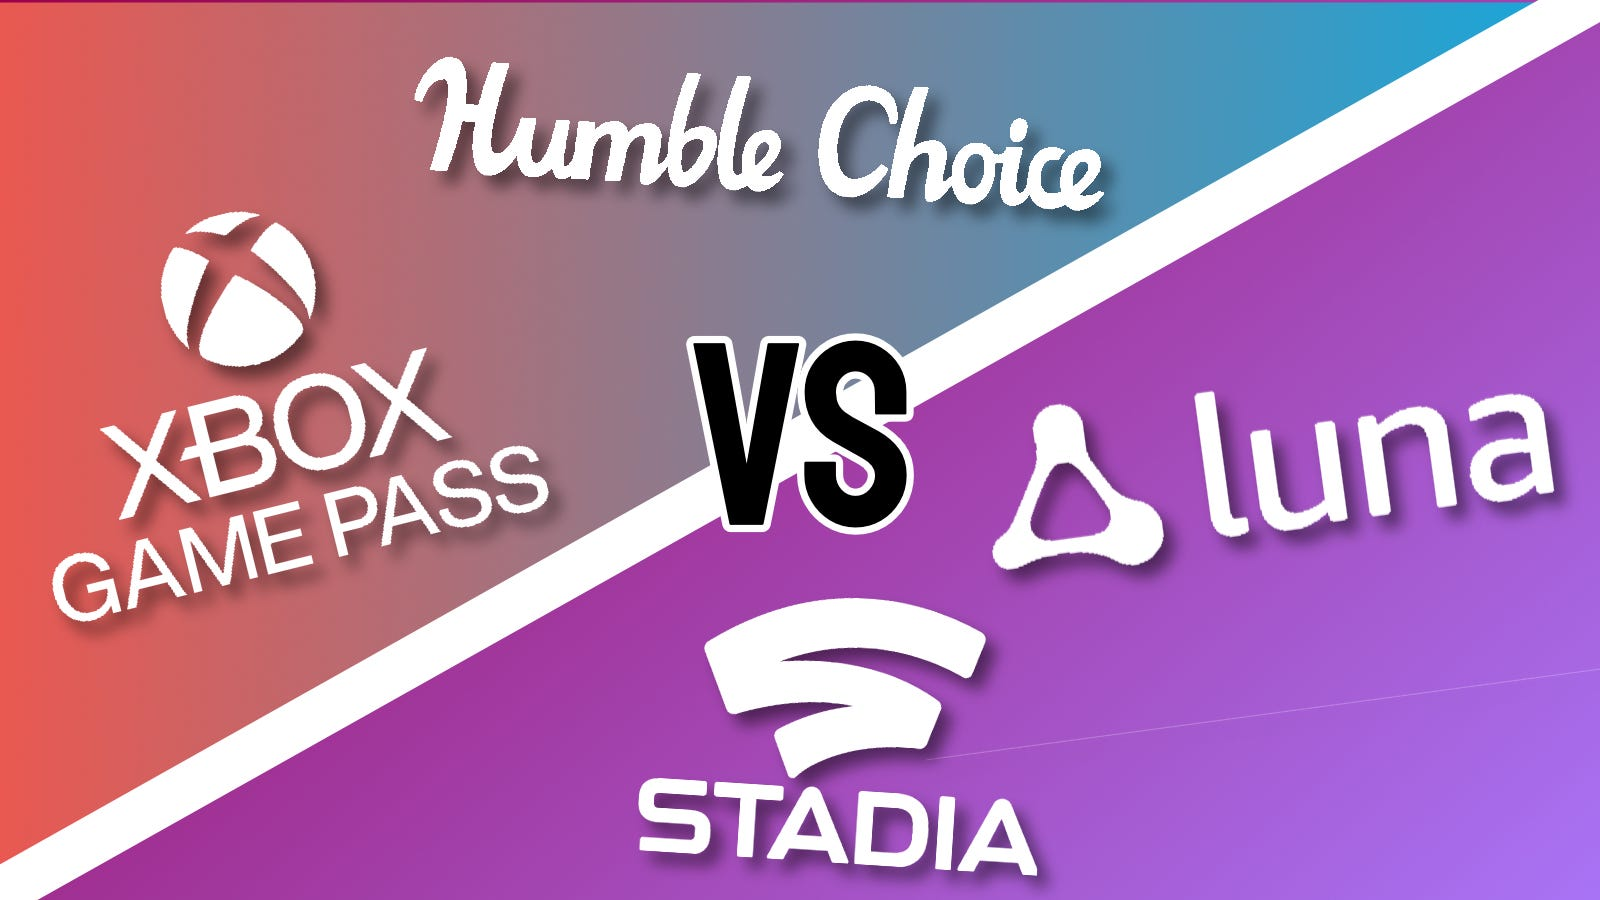 Xbox Game Pass Humble Choice, Google Stadia, and Amazon Luna logos against multi-colored backdrop